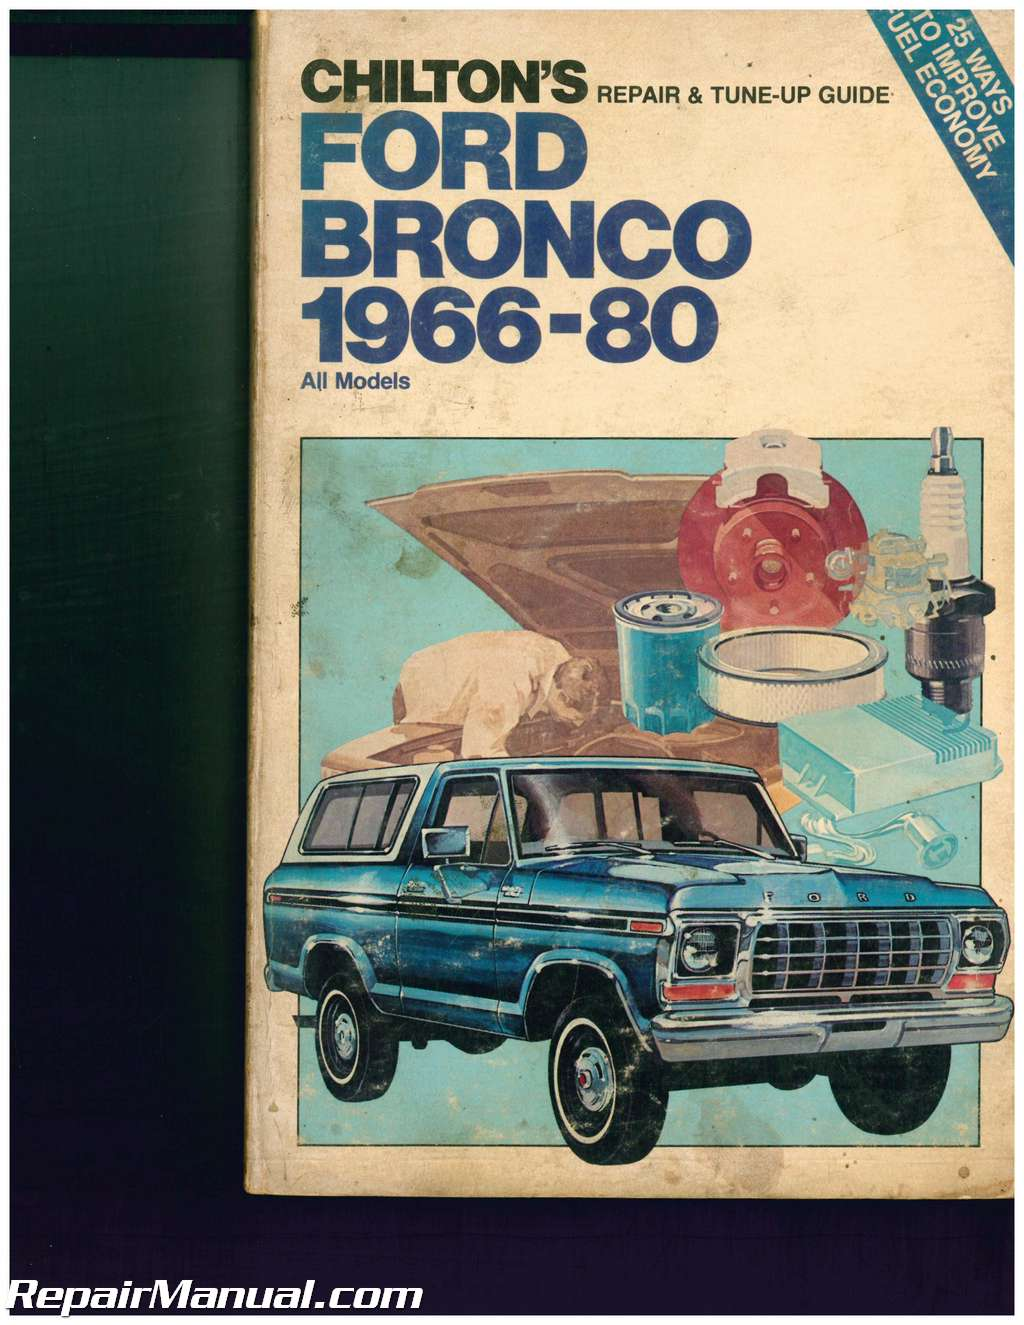 used chilton 1966 1980 ford bronco repair manual rh repairmanual com Chilton Repair Manuals Ford 1980 ford f100 workshop manual